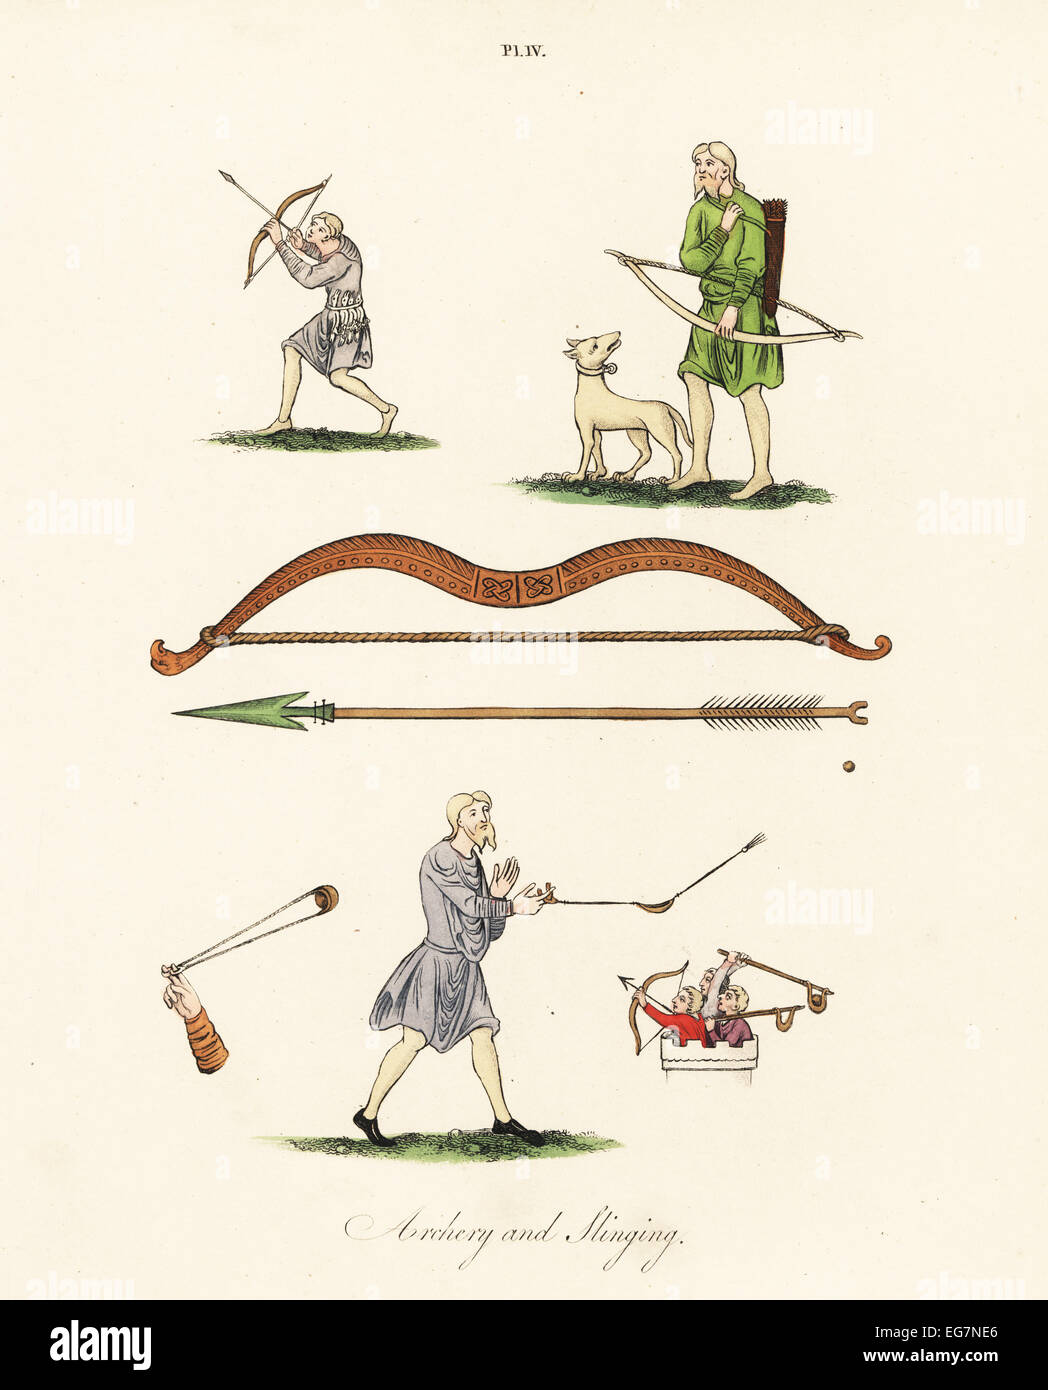 Saxon archers and slingers. - Stock Image